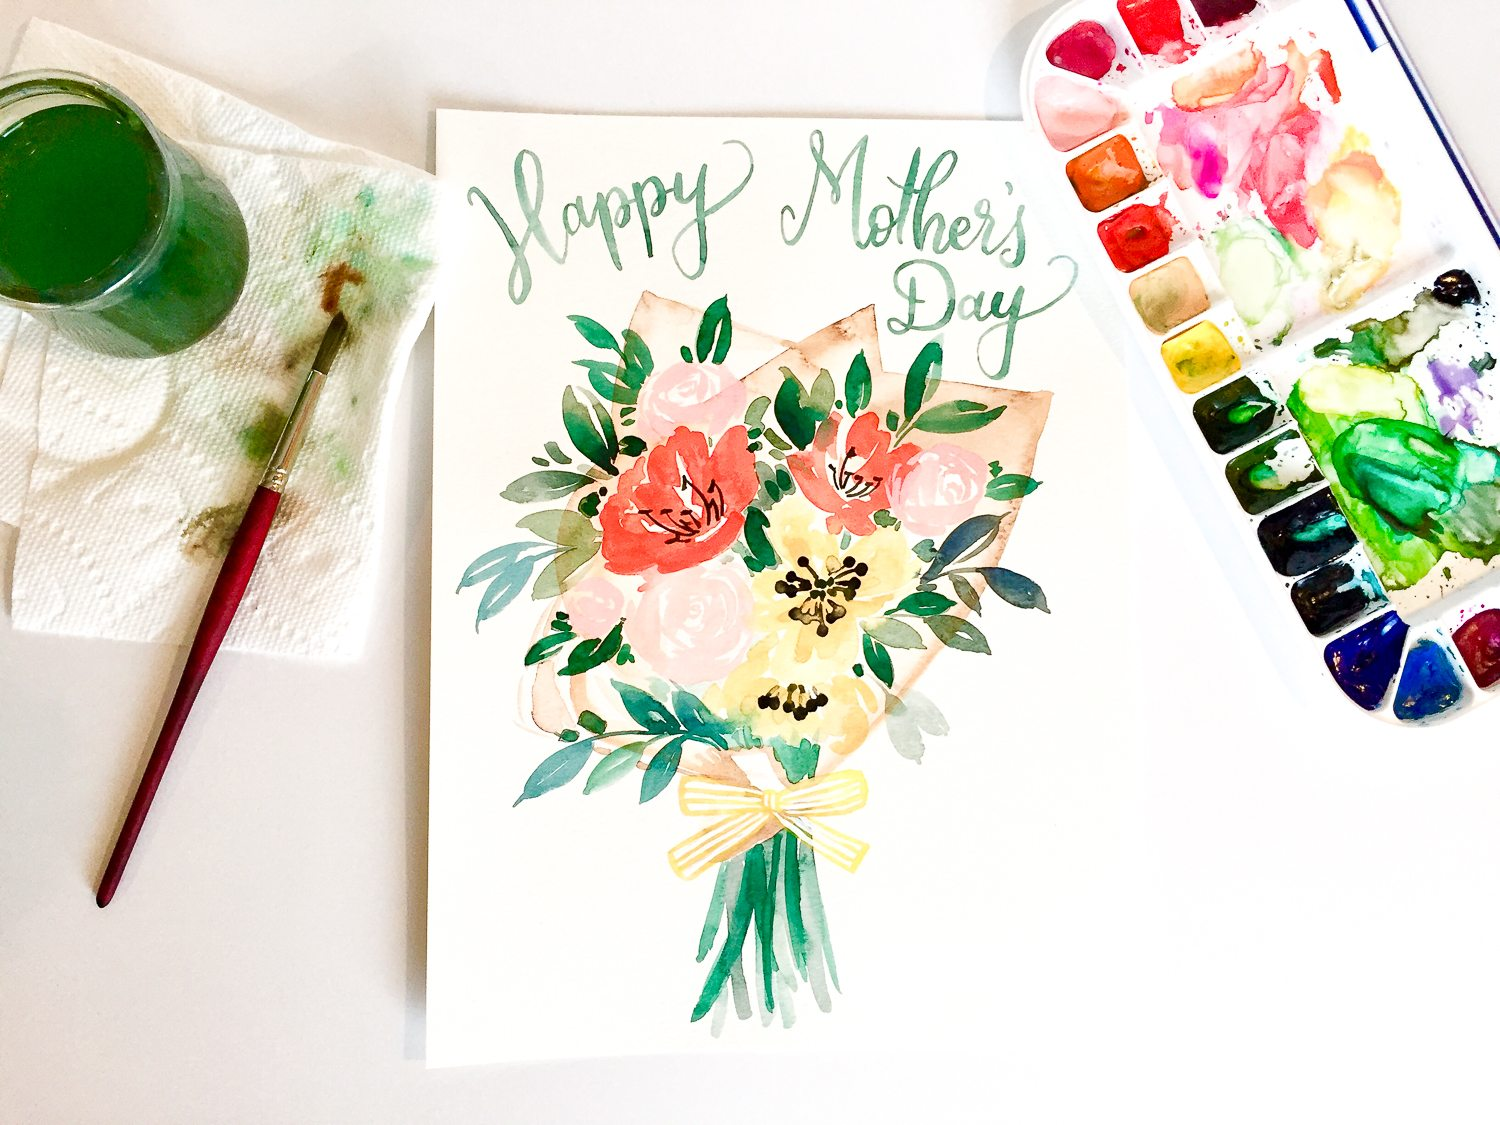 photo regarding Happy Mothers Day Printable named Pleased Moms Working day Printable Card inside Floral Watercolor